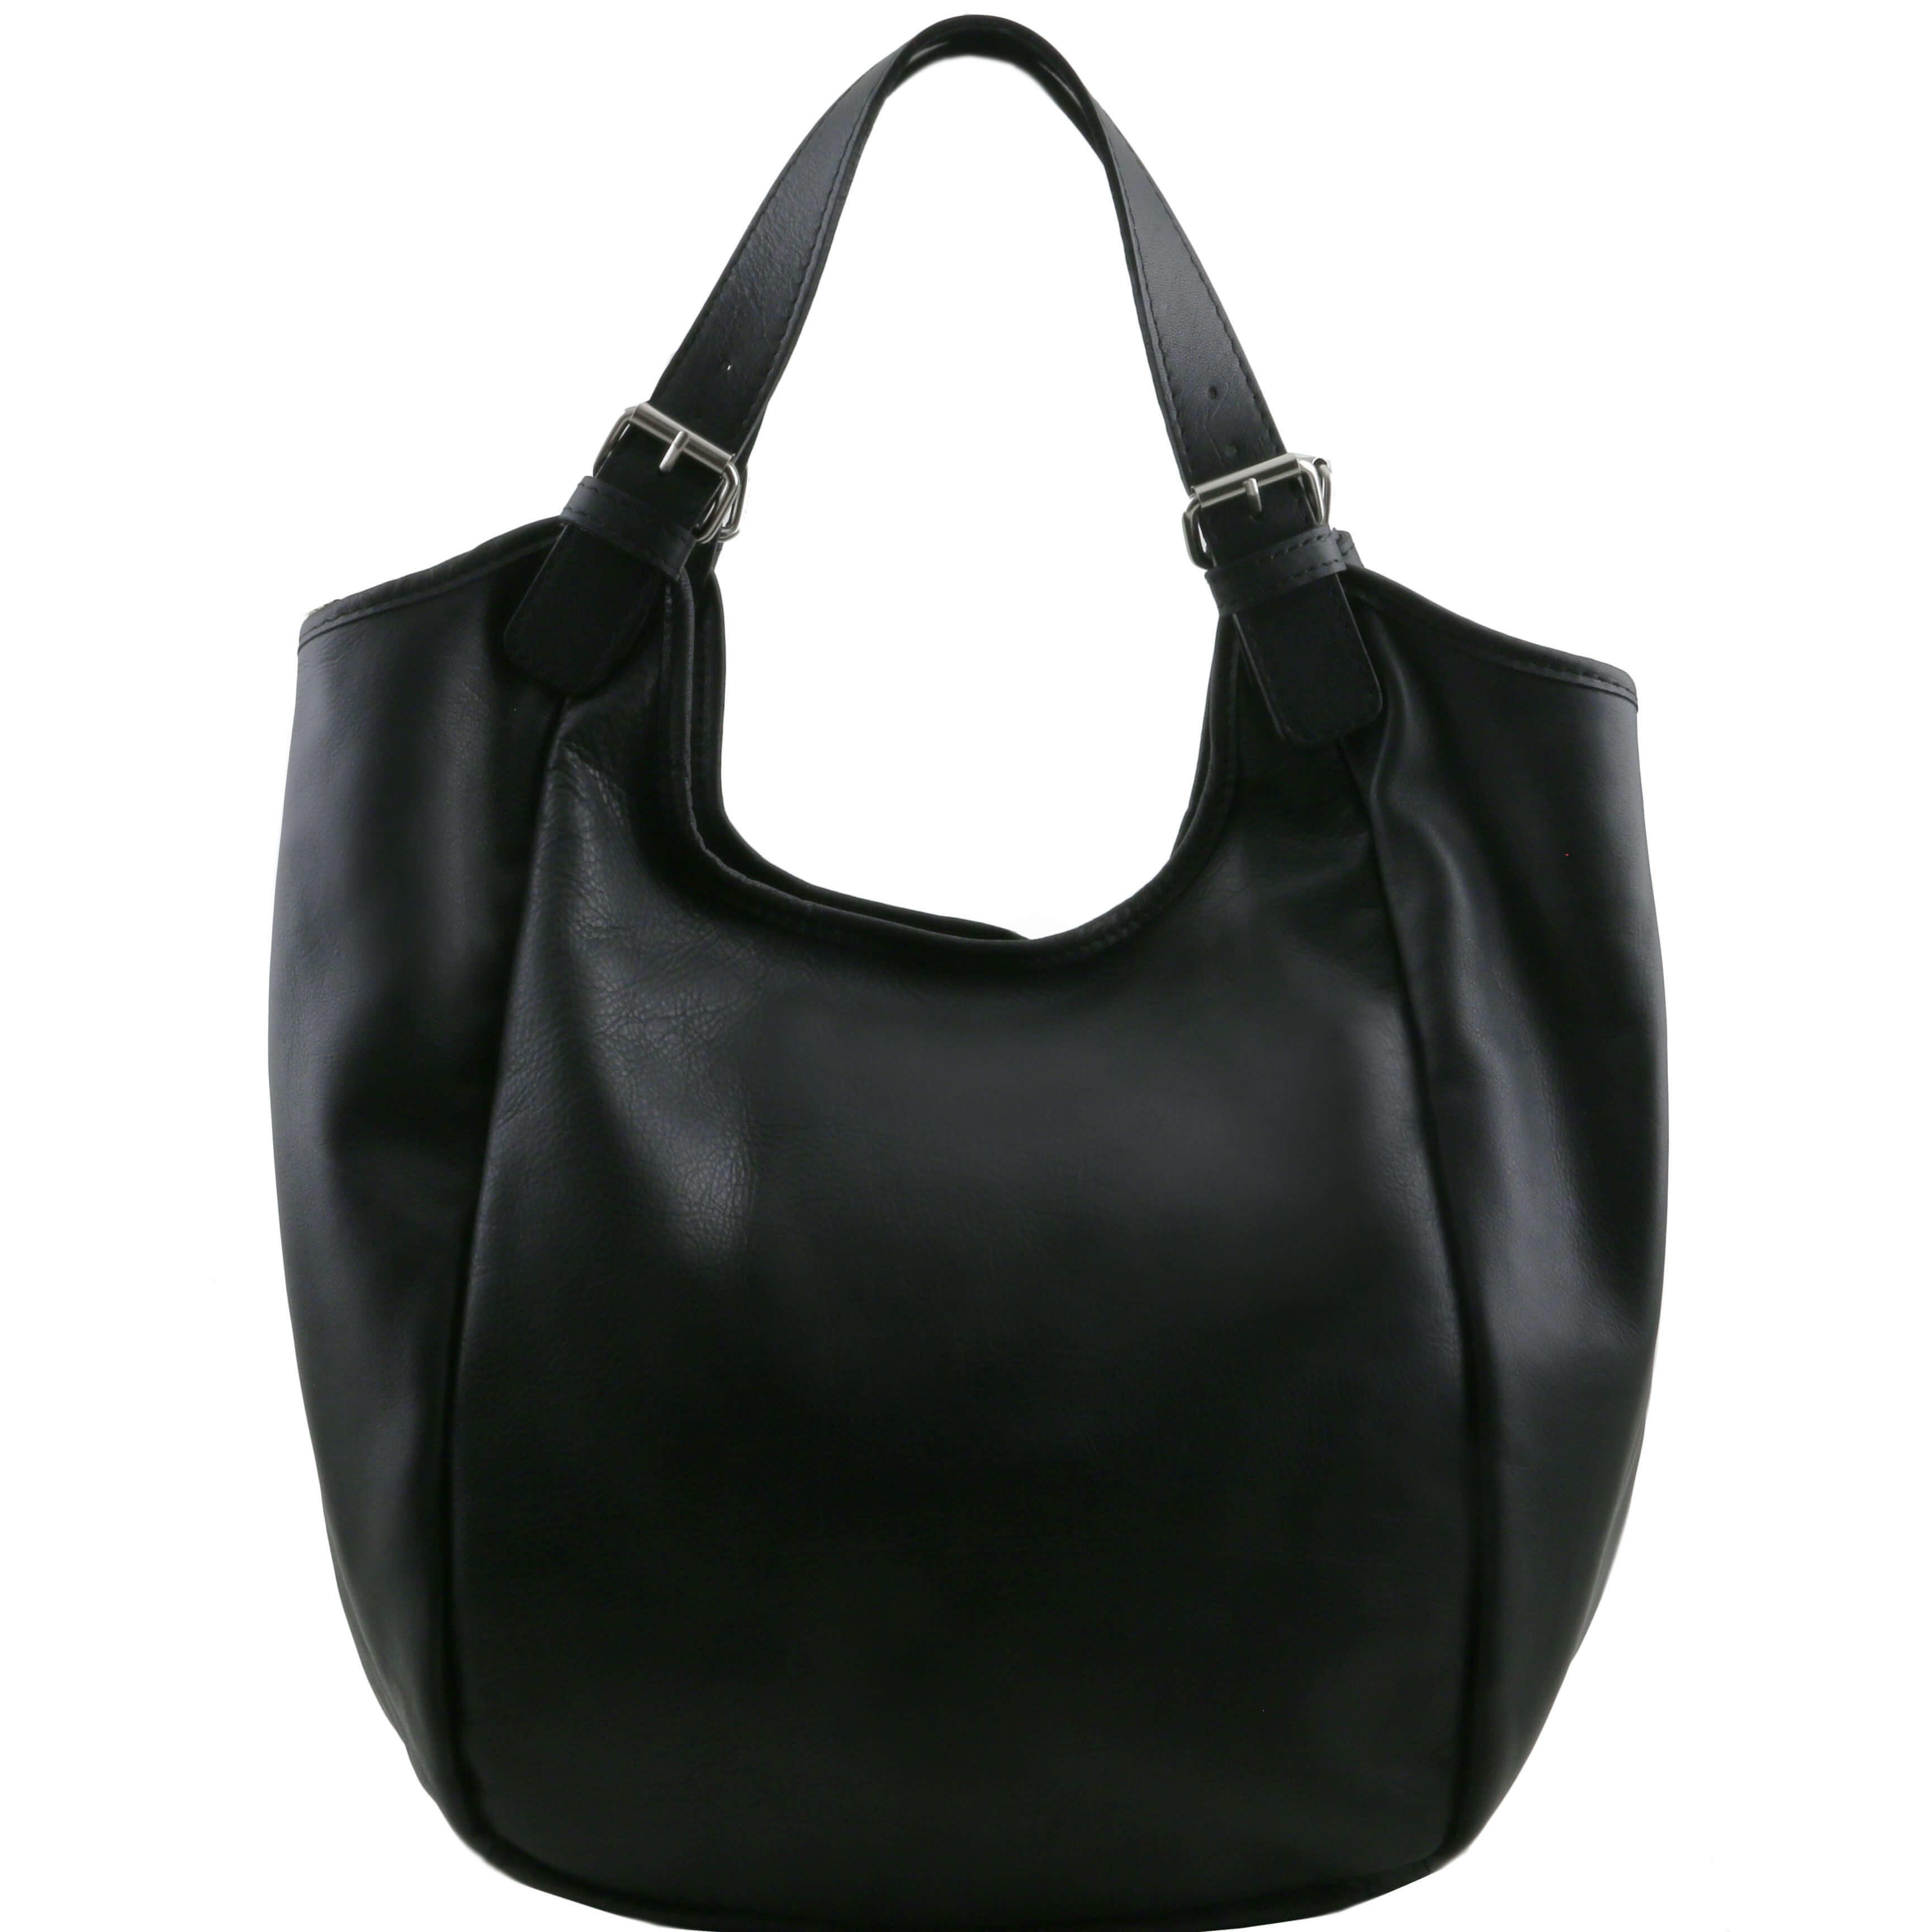 TL141357 Gina Classic Leather-Hand-Shoulder-Tote-Hobo-Bag Black